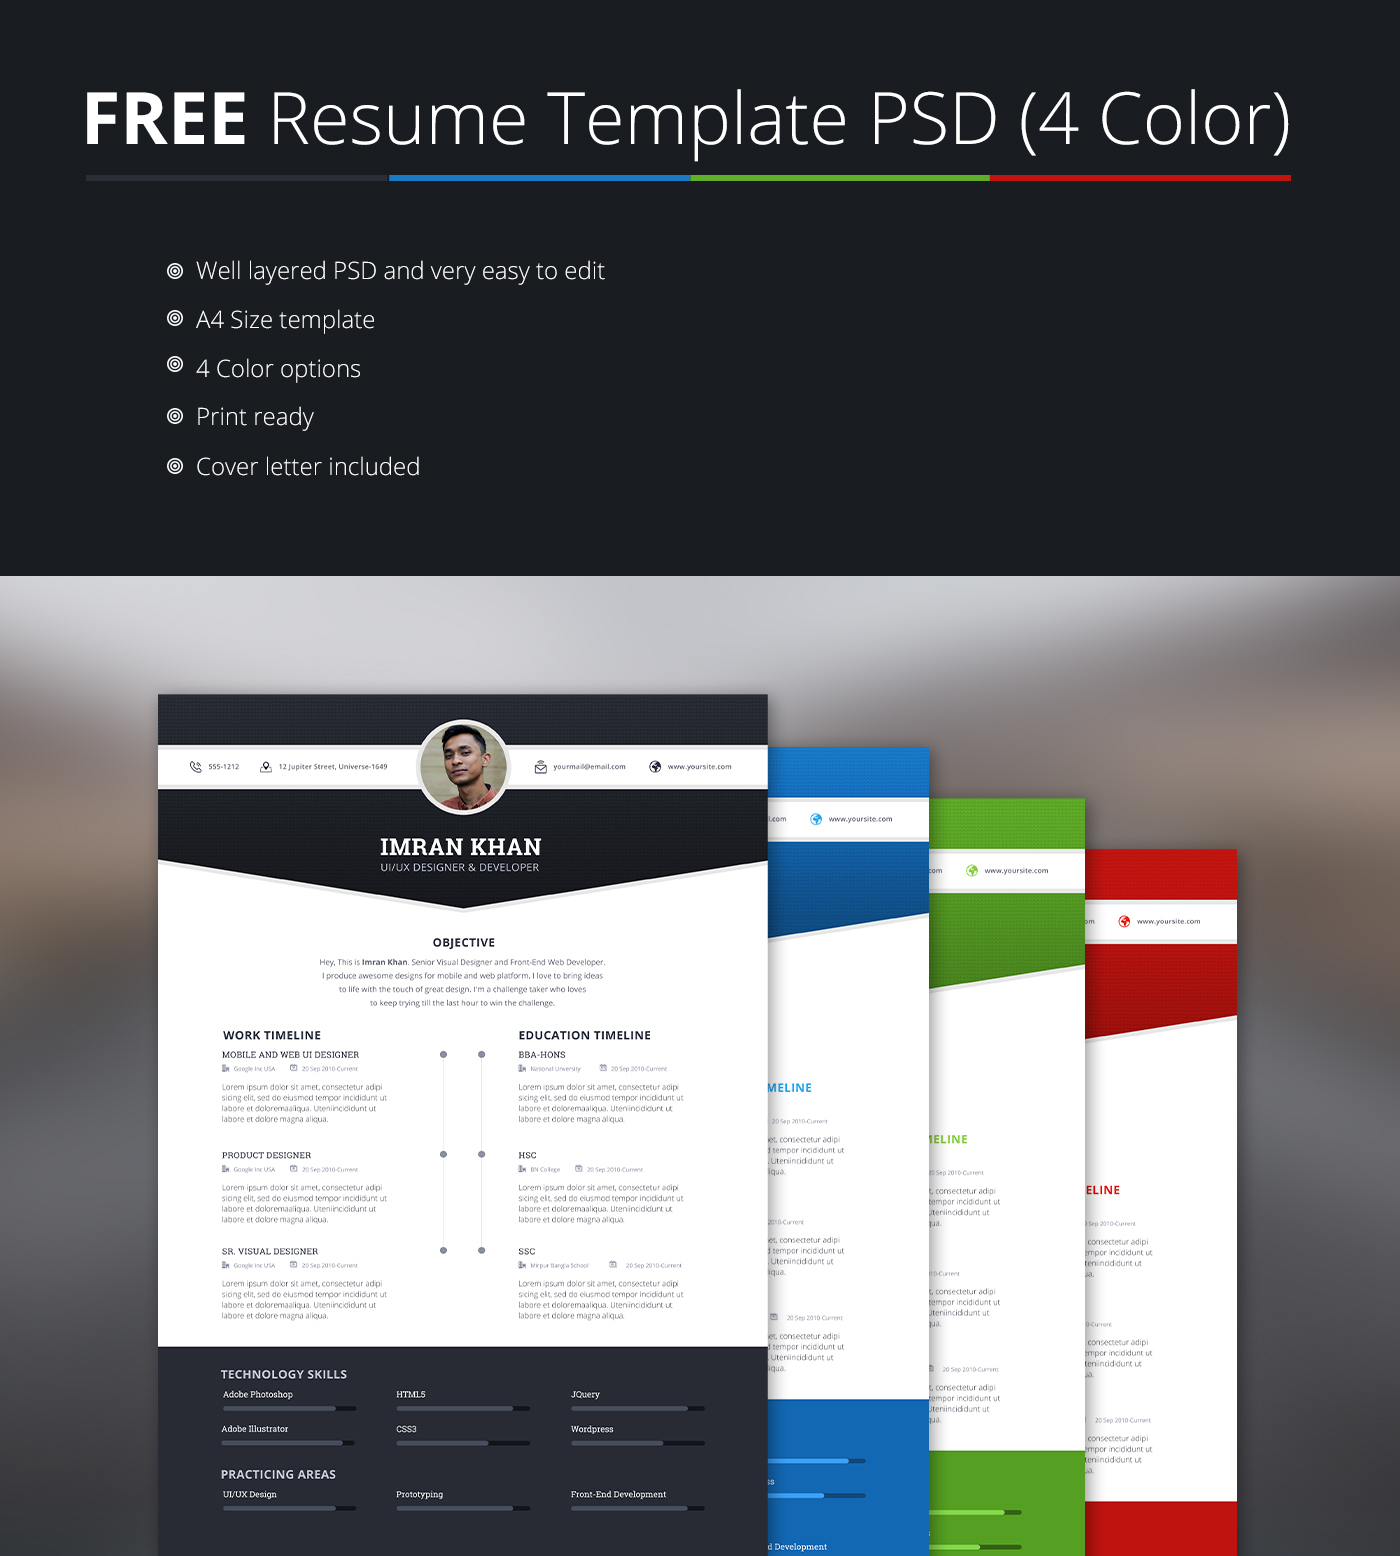 Free resume template psd 4 colors on behance pronofoot35fo Images